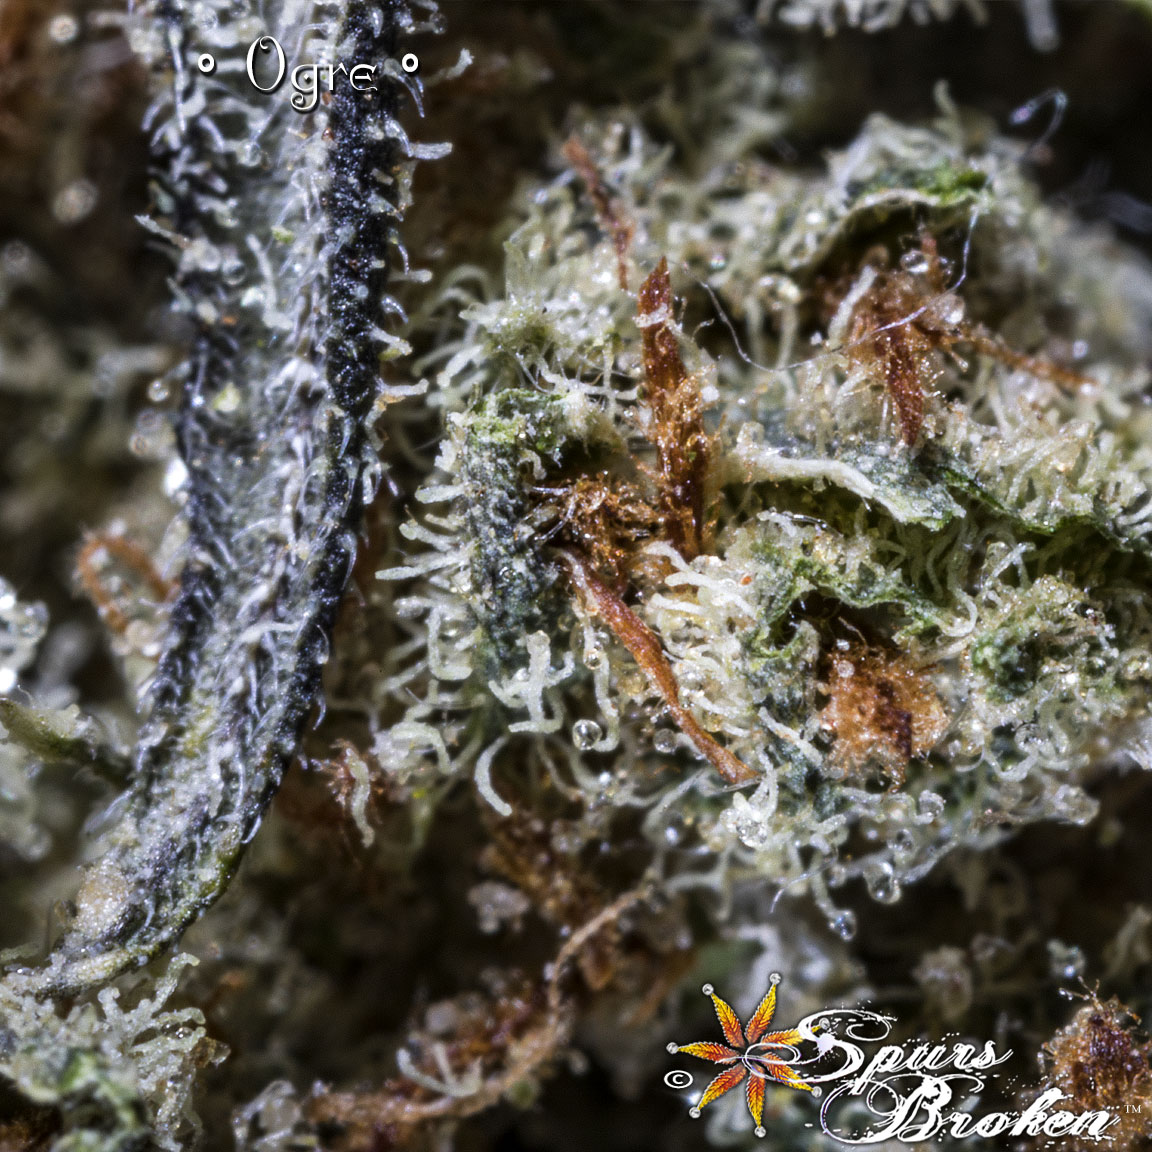 Ogre - Cannabis Macro Photography by Spurs Broken (Robert R. Sanders)